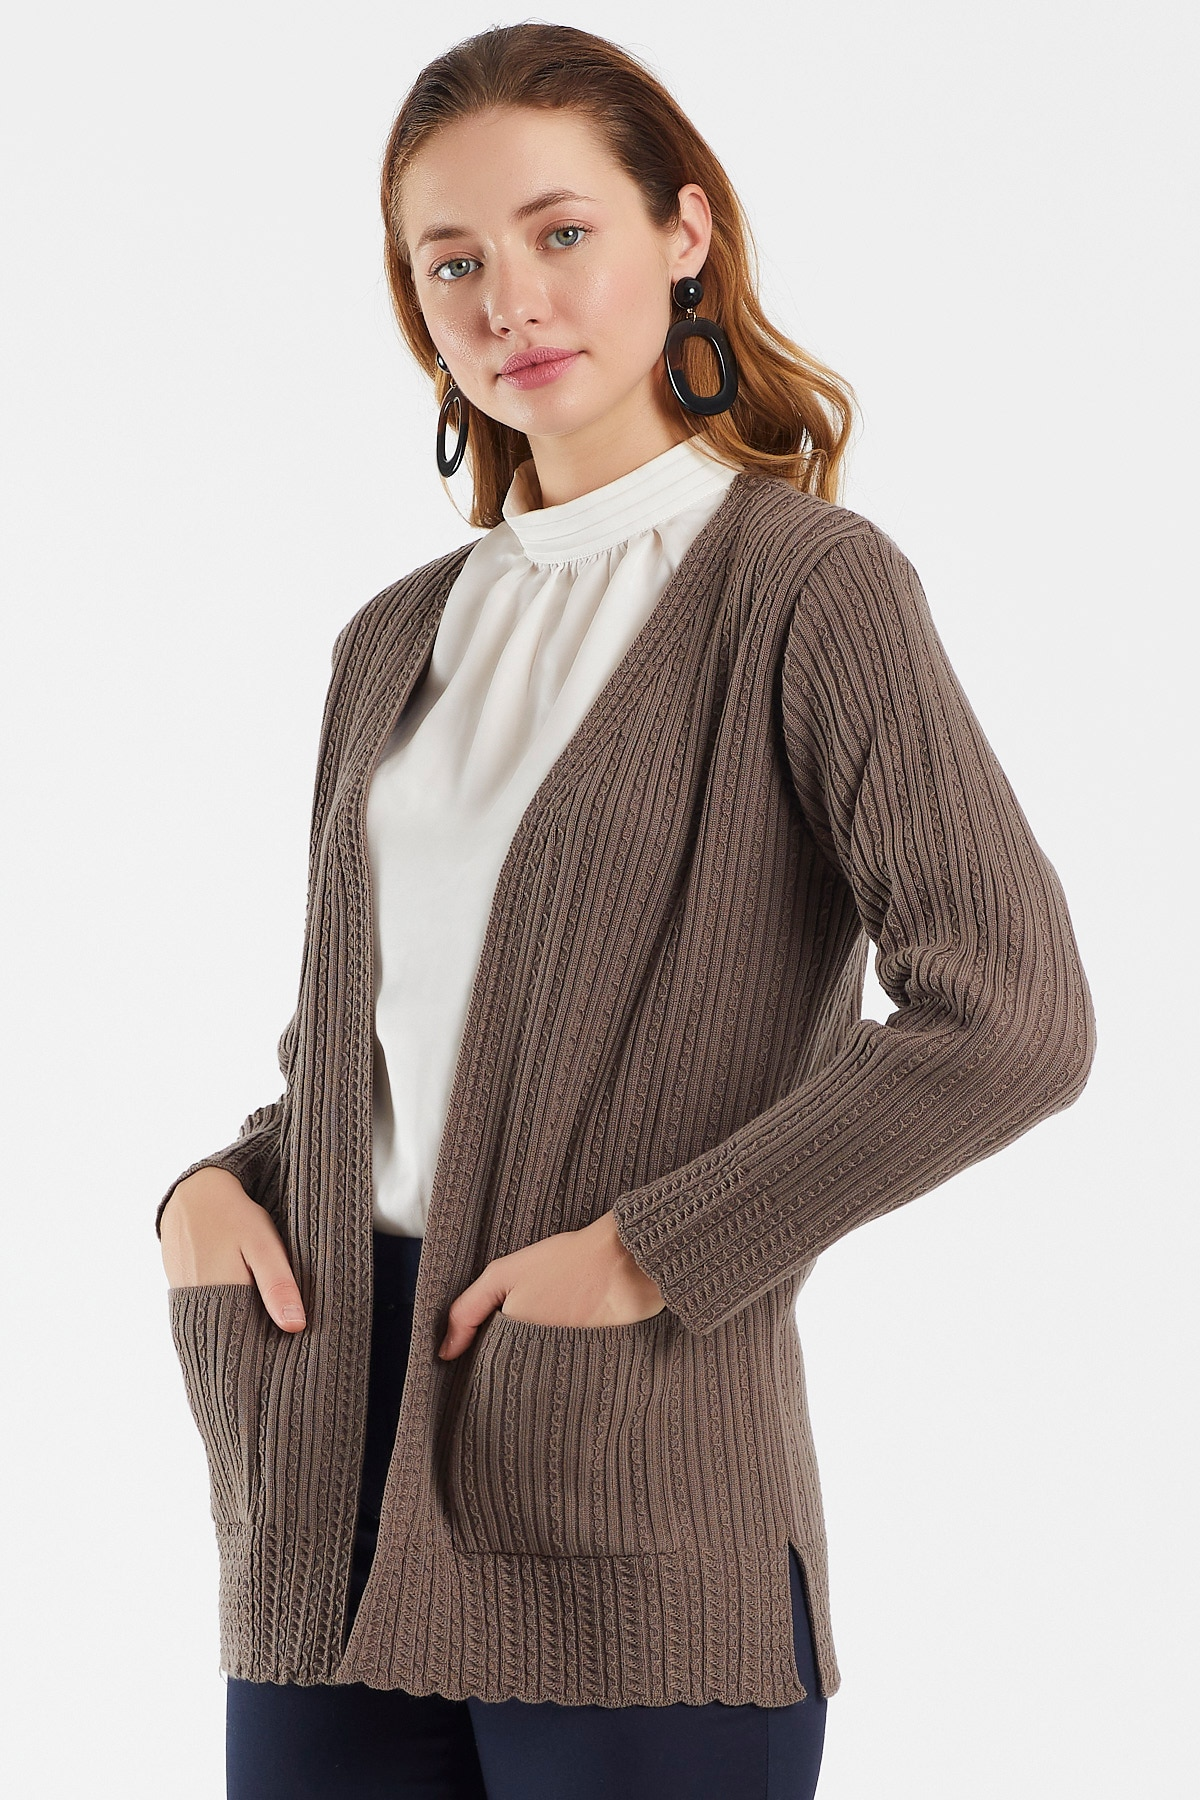 Women's Long Sleeve Open Front Knitted Cardigan - Sweater Outwear Tops with Pockets - Self Striped Sports Cardigan enlarge